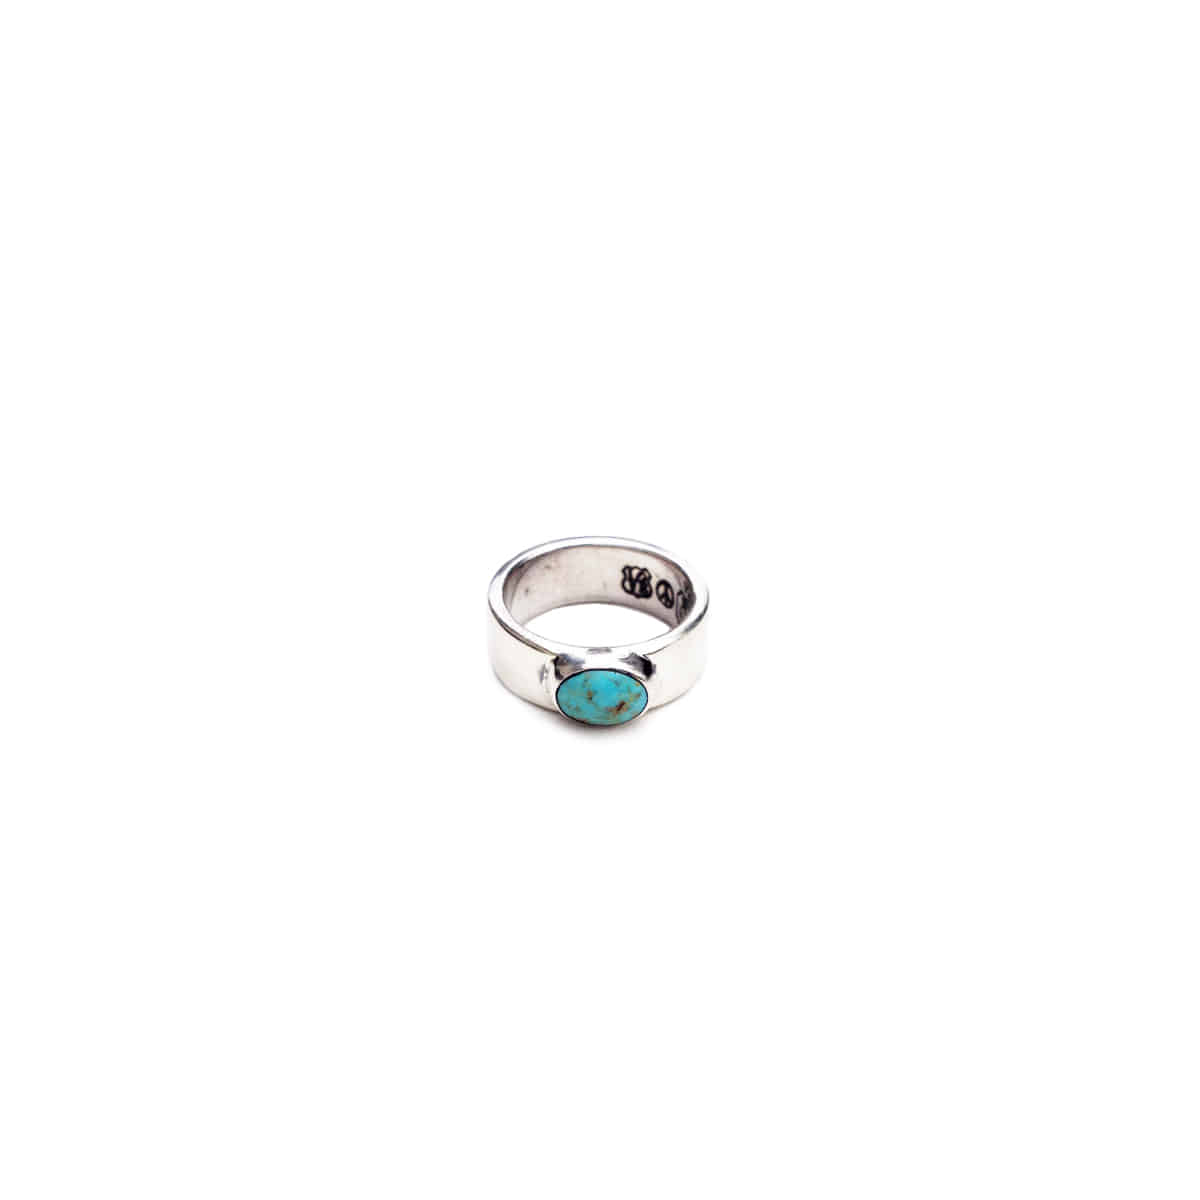 [NORTH WORKS] 900 SILVER TURQUOISE RING 'W-027'